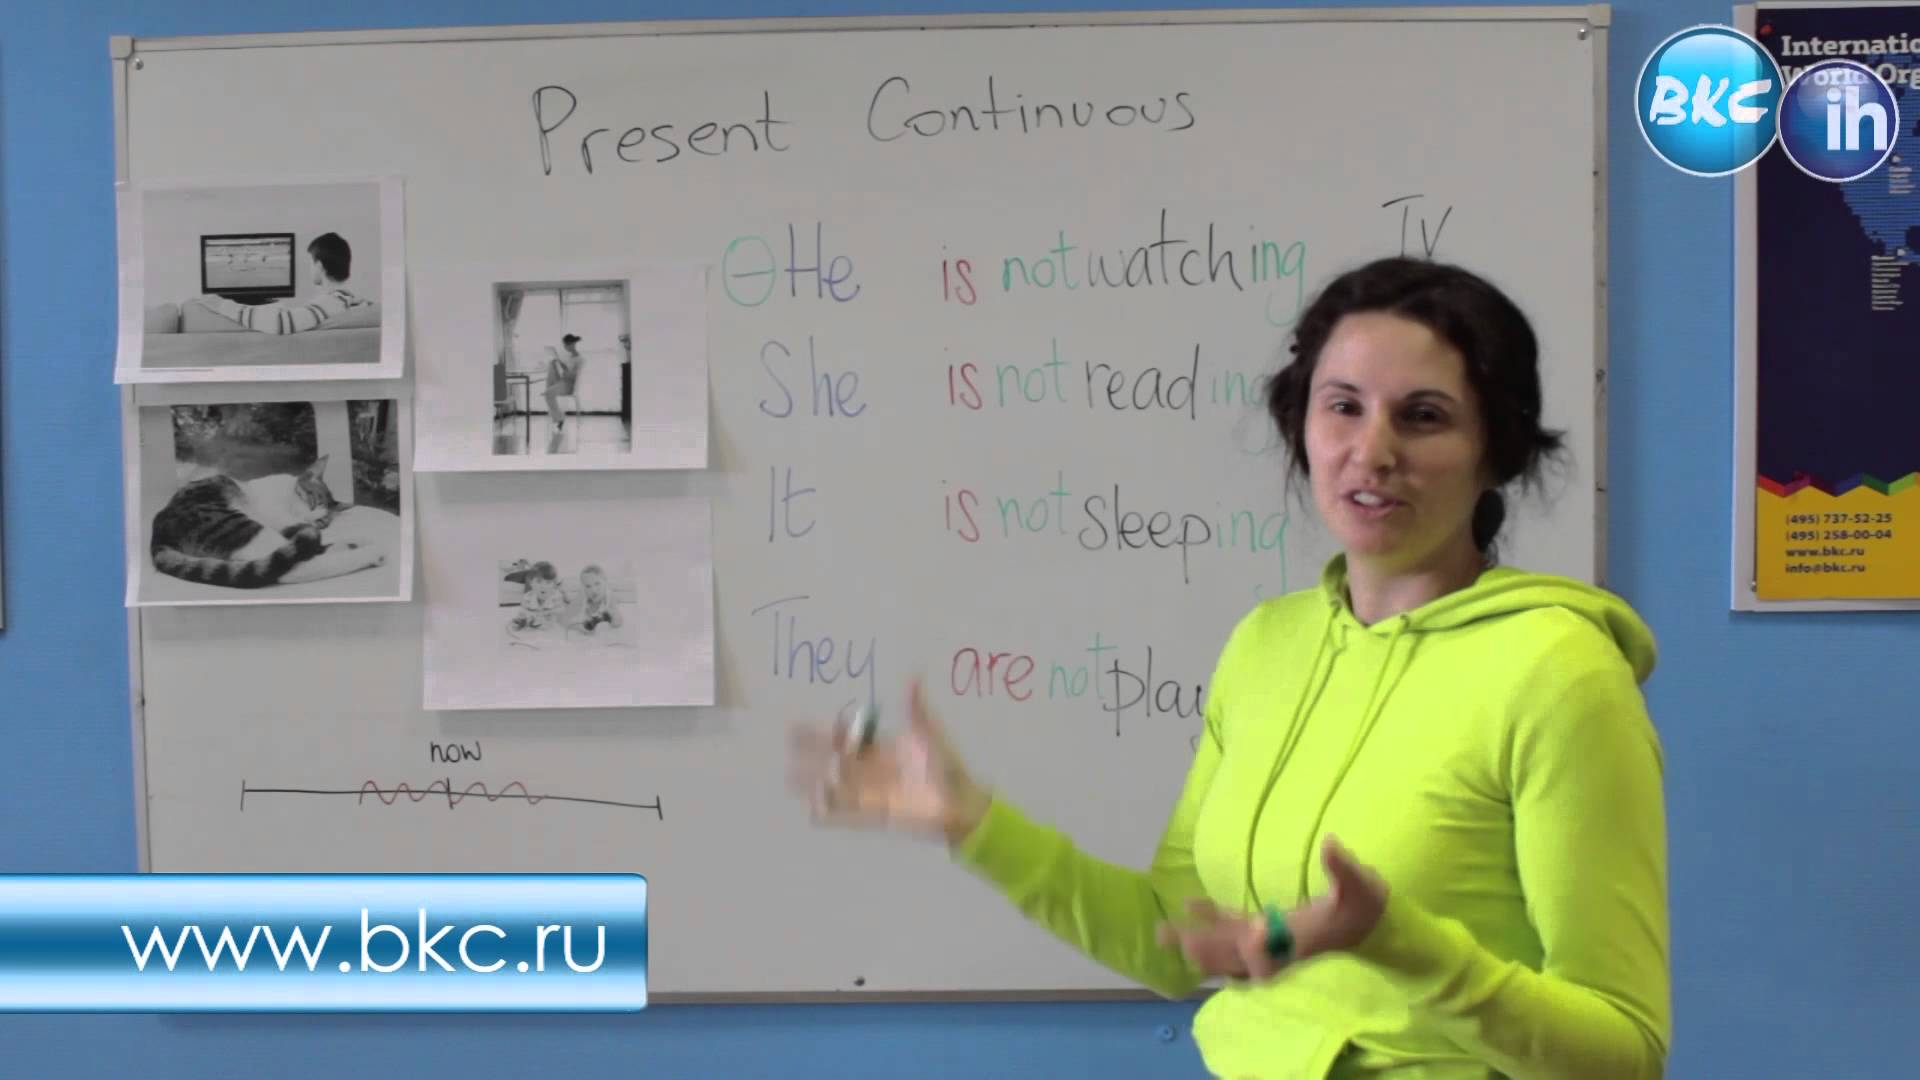 Урок английского языка (English Lesson) - Present Continuous by BKC-IH